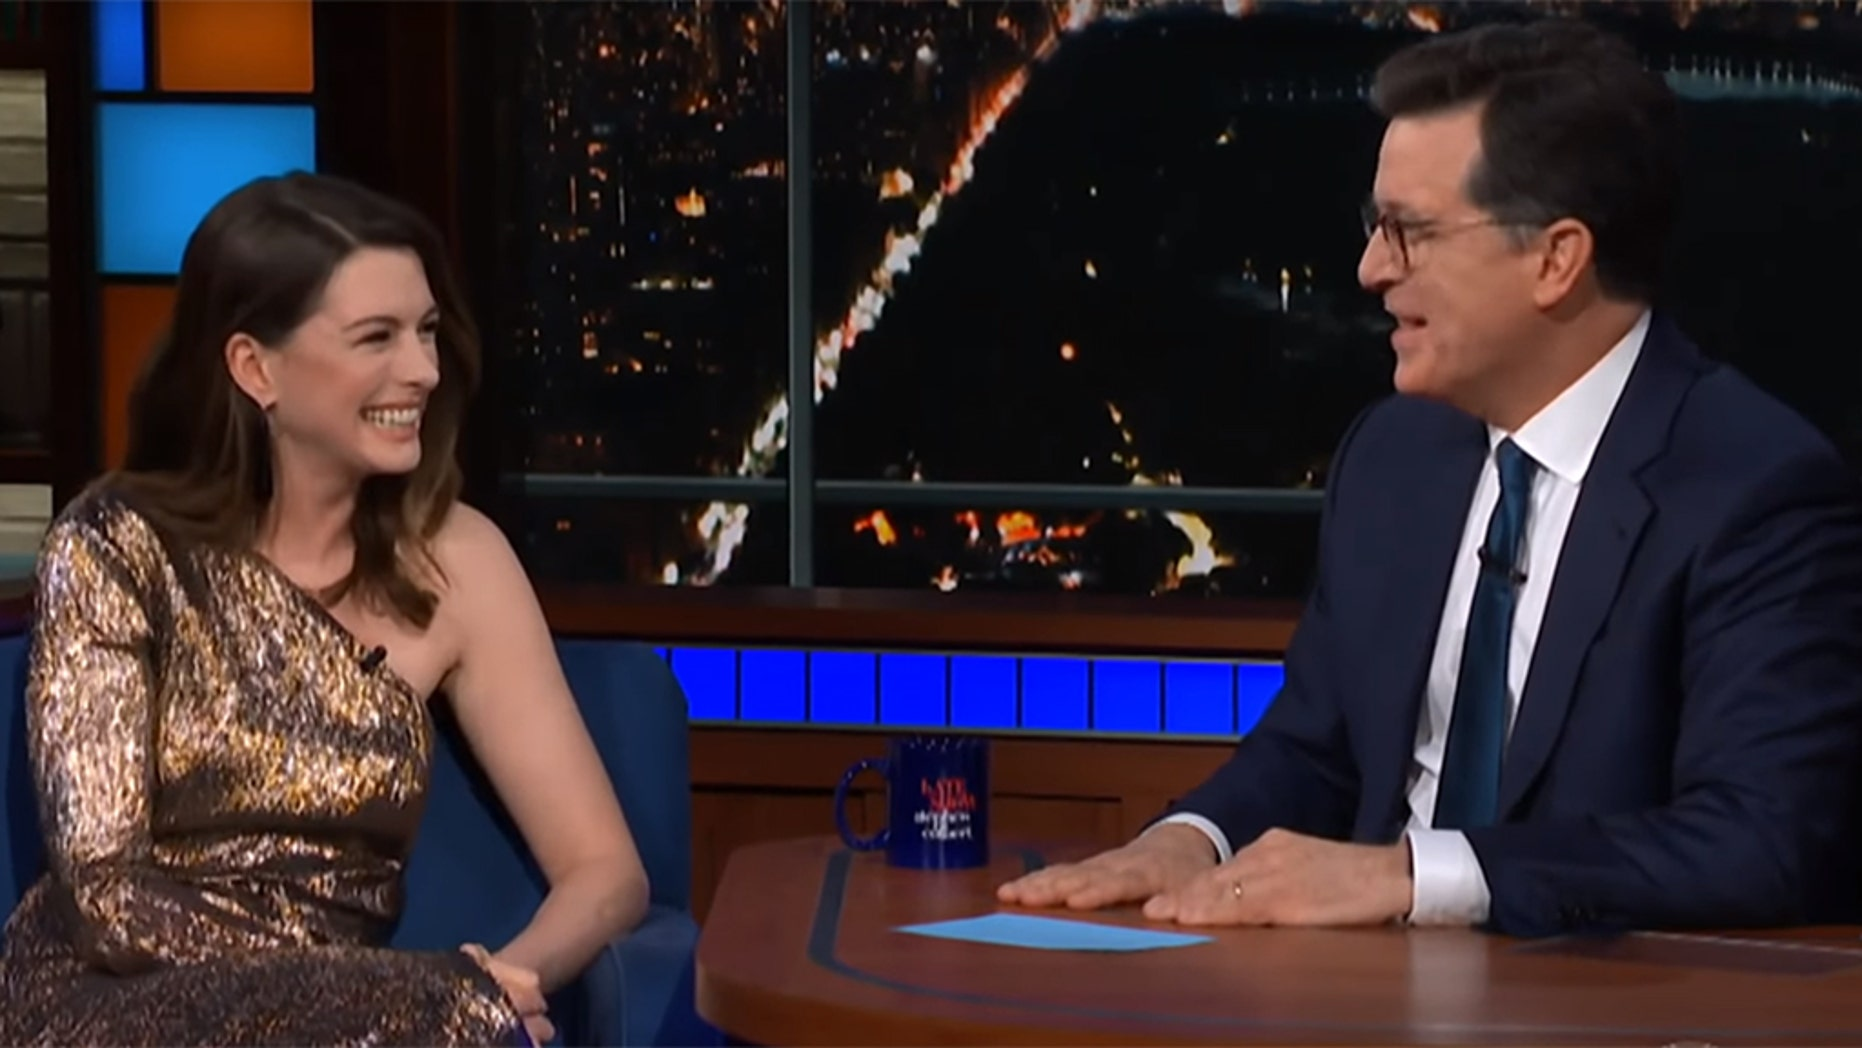 Anne Hathaway and Stephen Colbert rewatch the actress' first ever TV commercial that she booked at the age of 14.